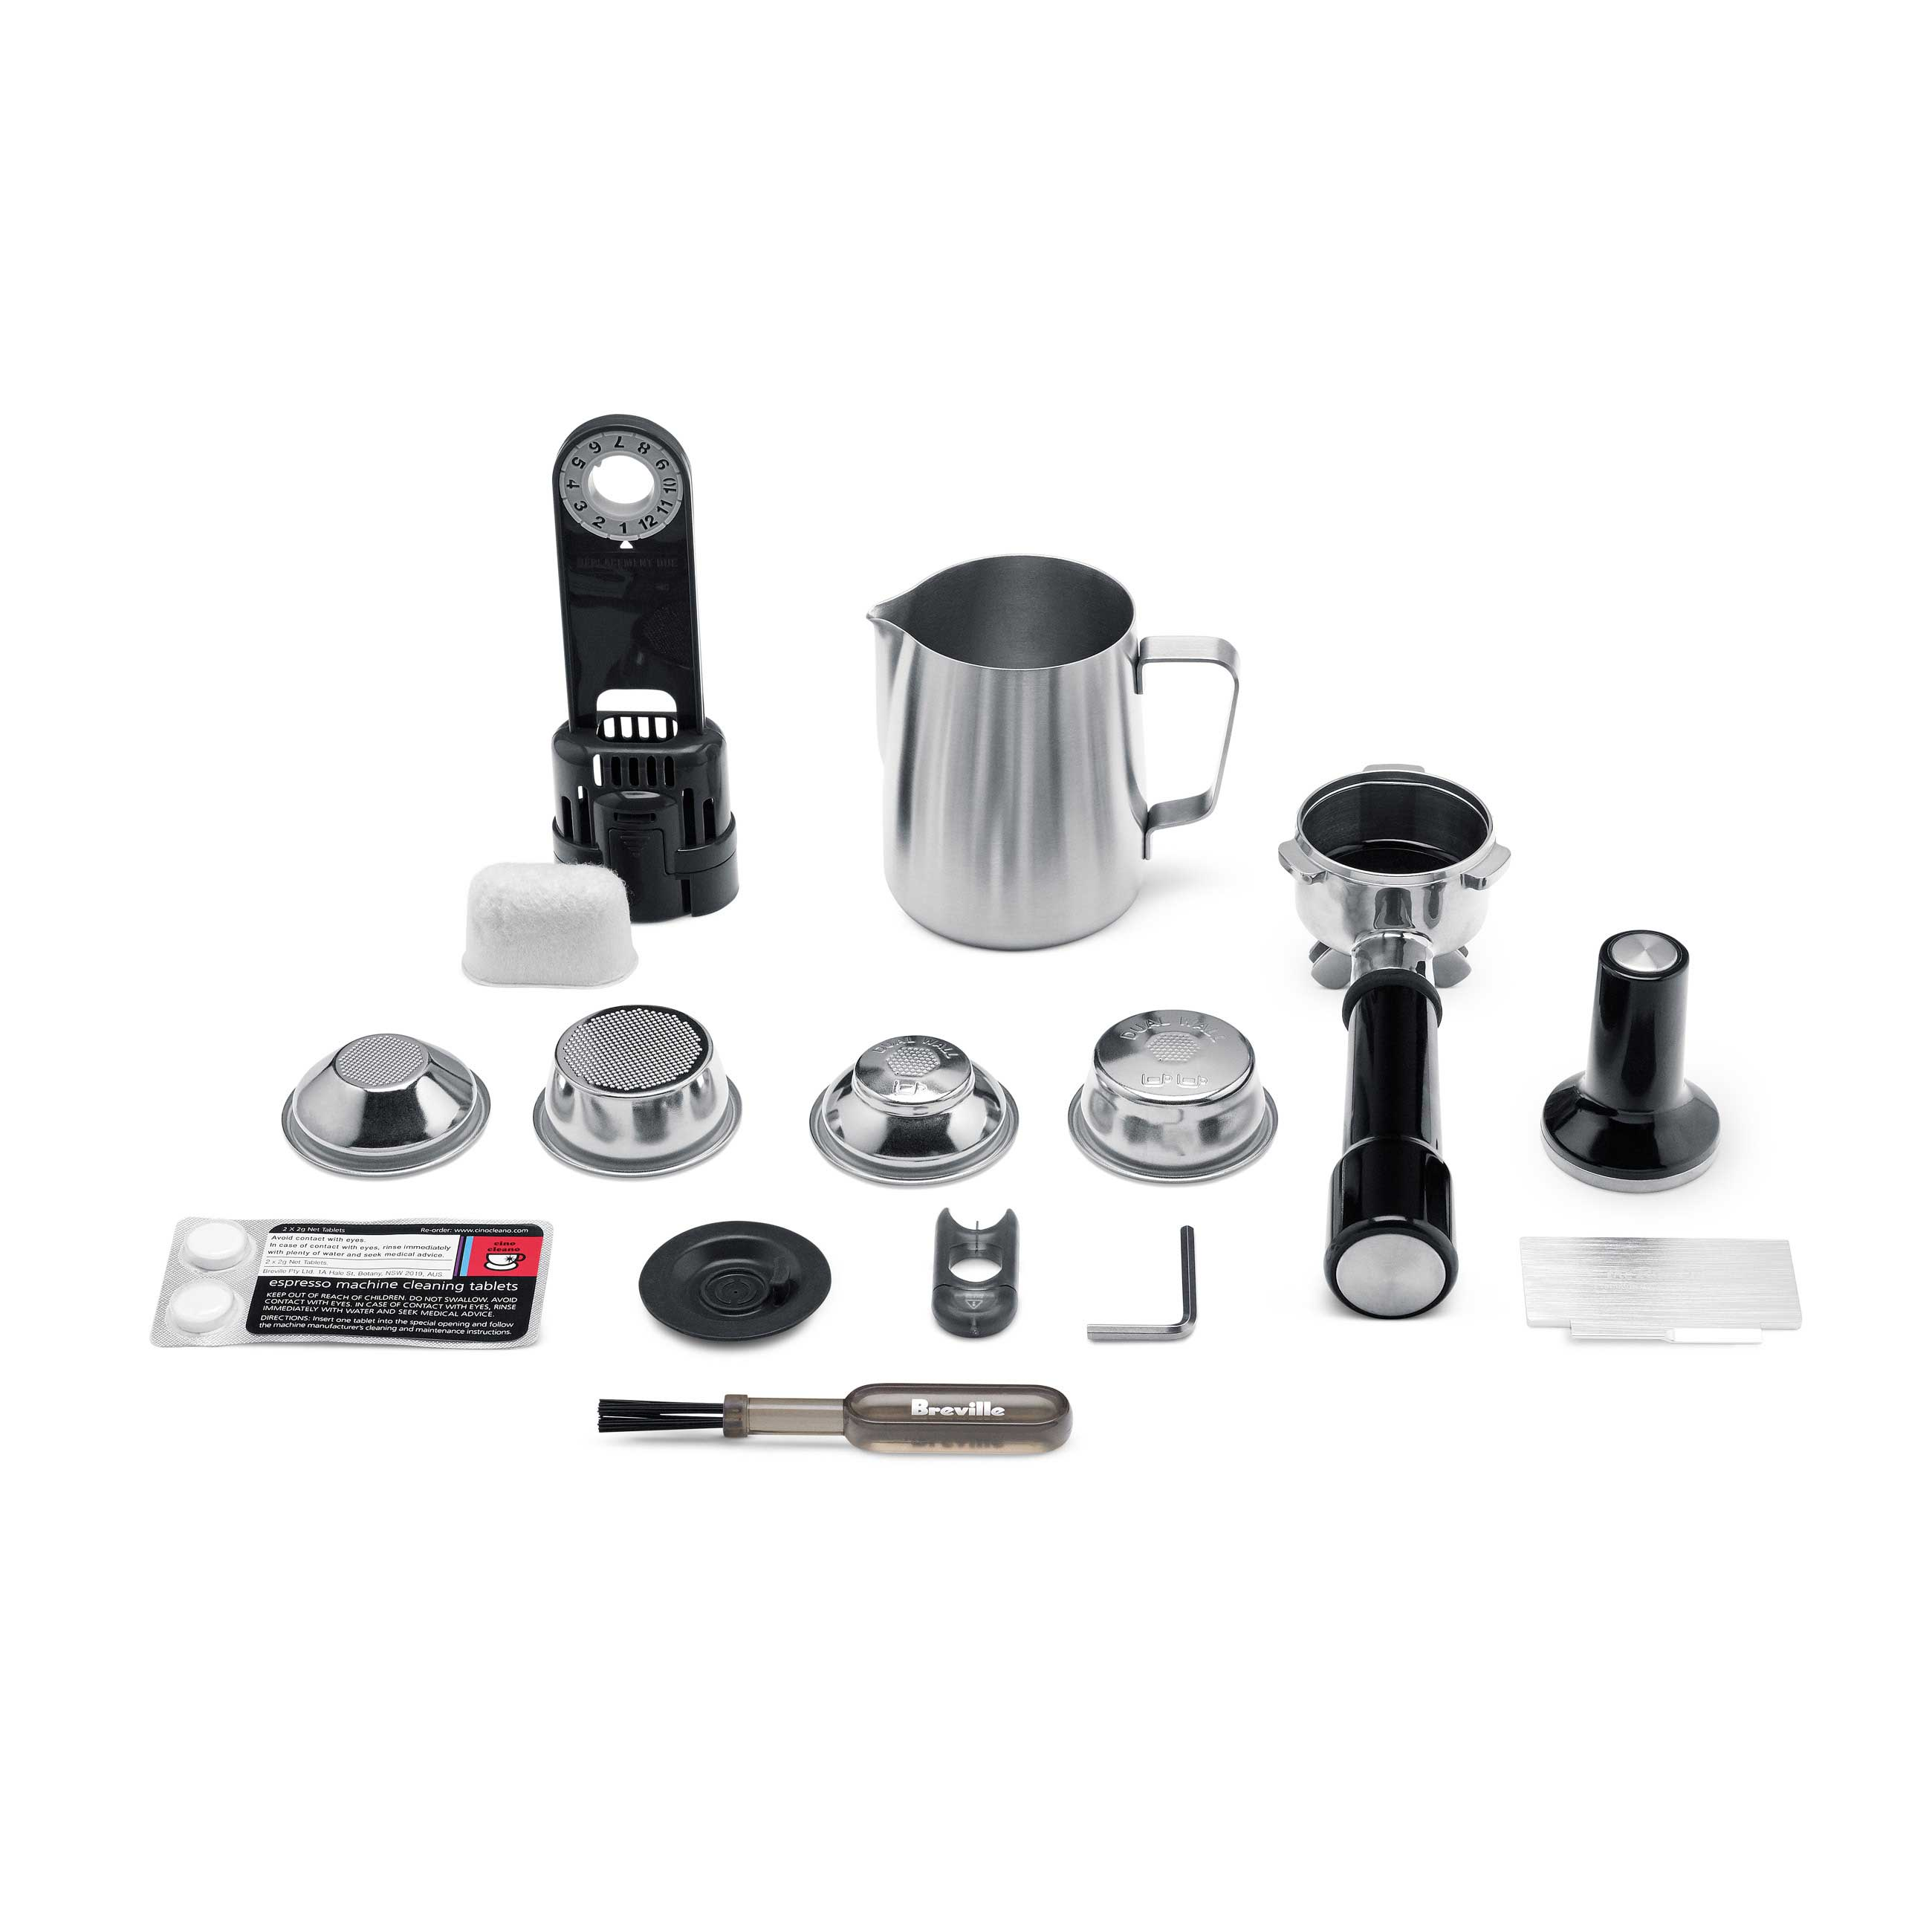 the Barista Express Espresso Machine included kit